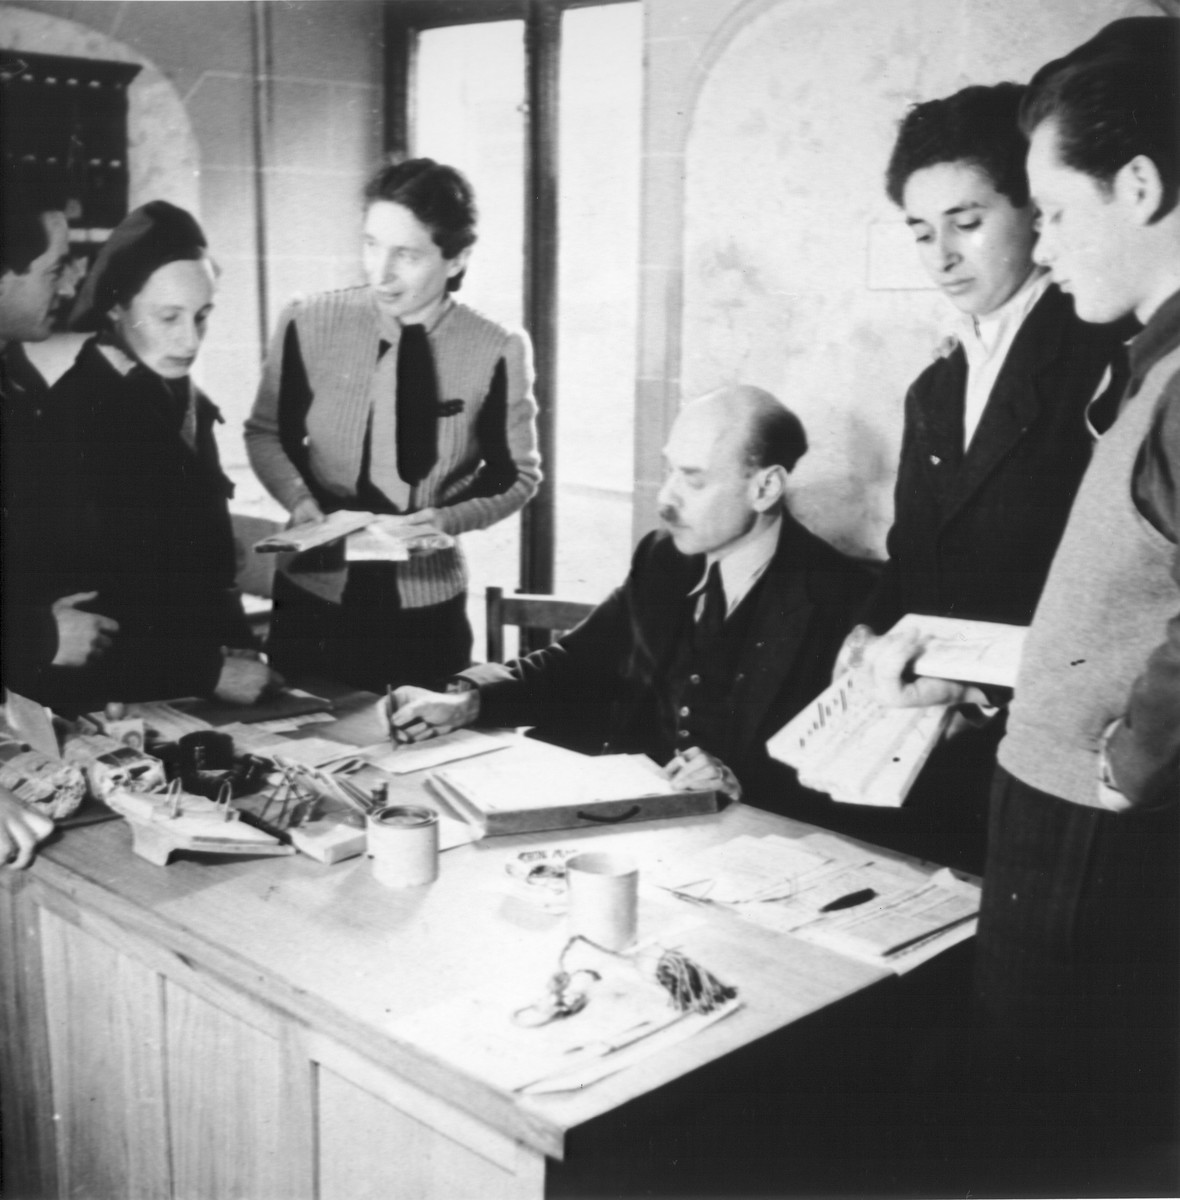 Jewish DP youth living at the OSE (Oeuvre de Secours aux Enfants) children's home on the rue Rollin in Paris, meet with the director of the home in his office.  Among those pictured are: M. Adler, the director of the home and his wife (center).  The Adlers were Jewish refugees from Germany.